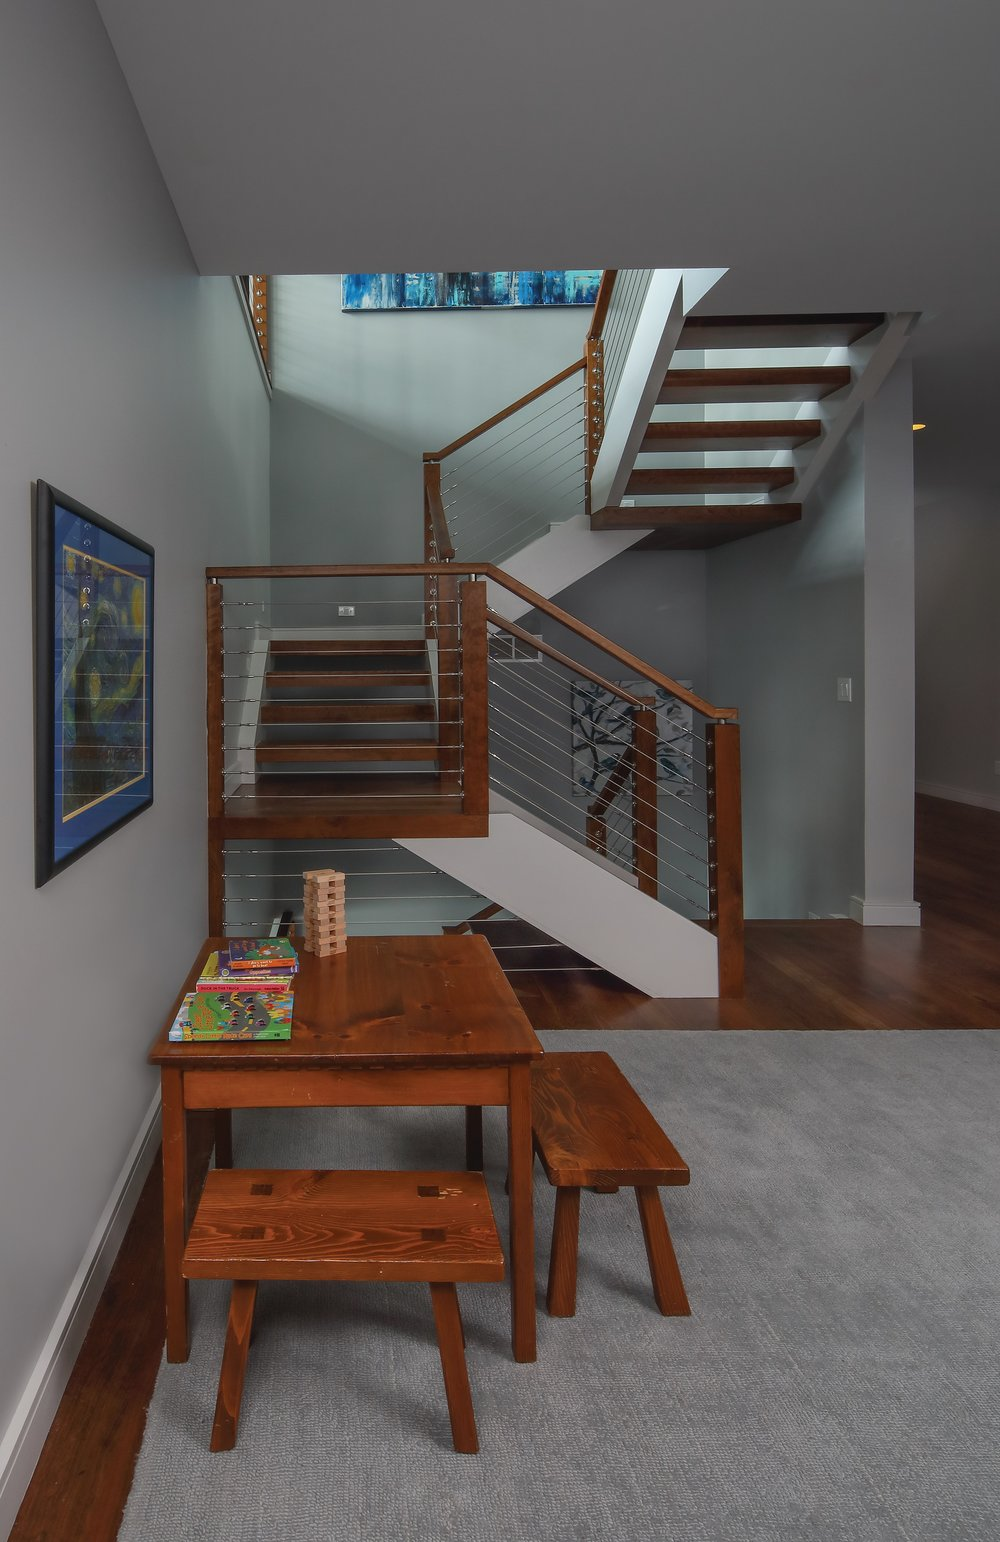 Kids Table and Stair.jpg